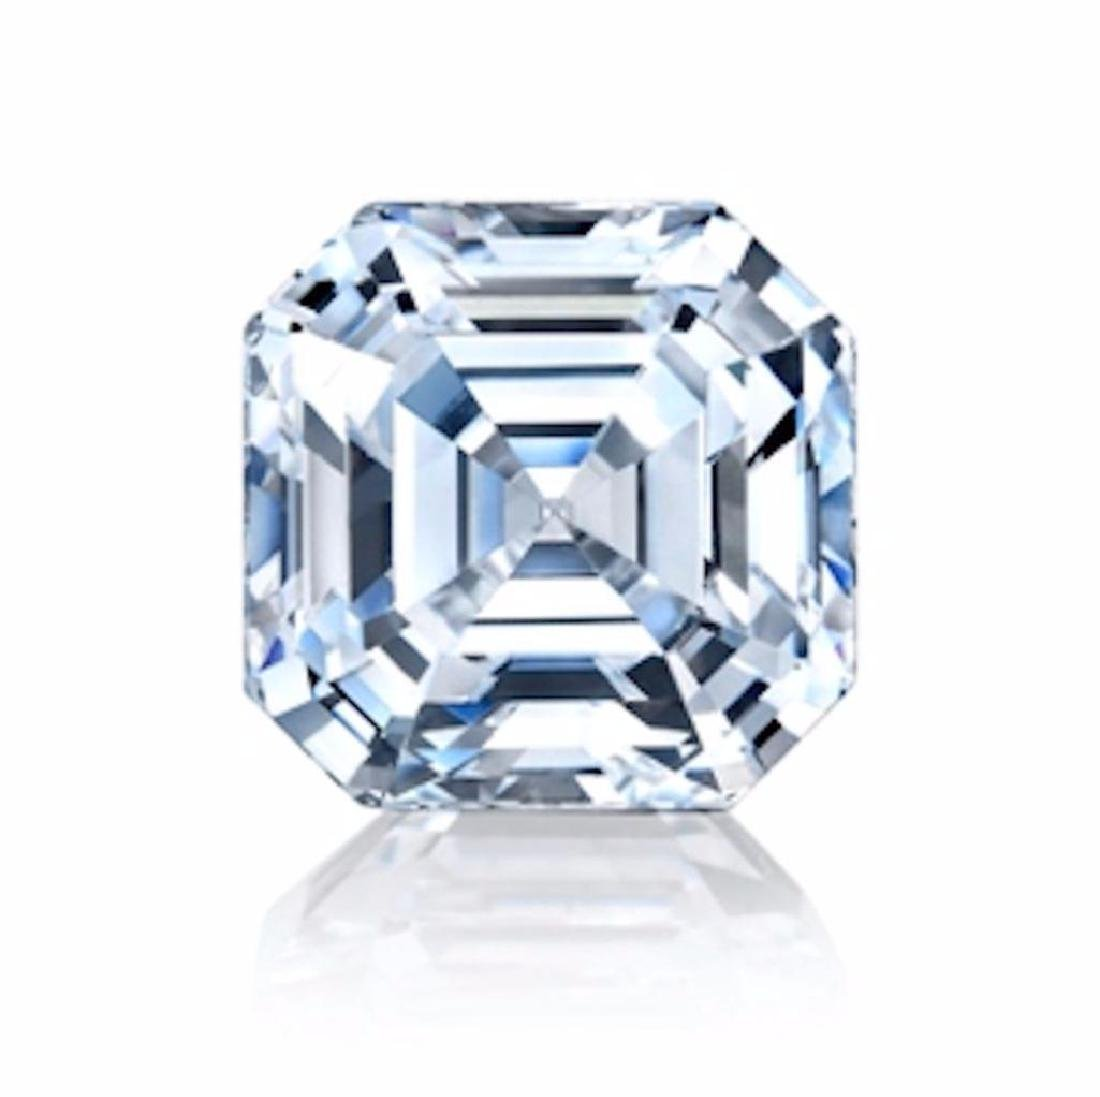 2.04cts Asscher Cut Bianco Diamond 6AAAAAA - Loose